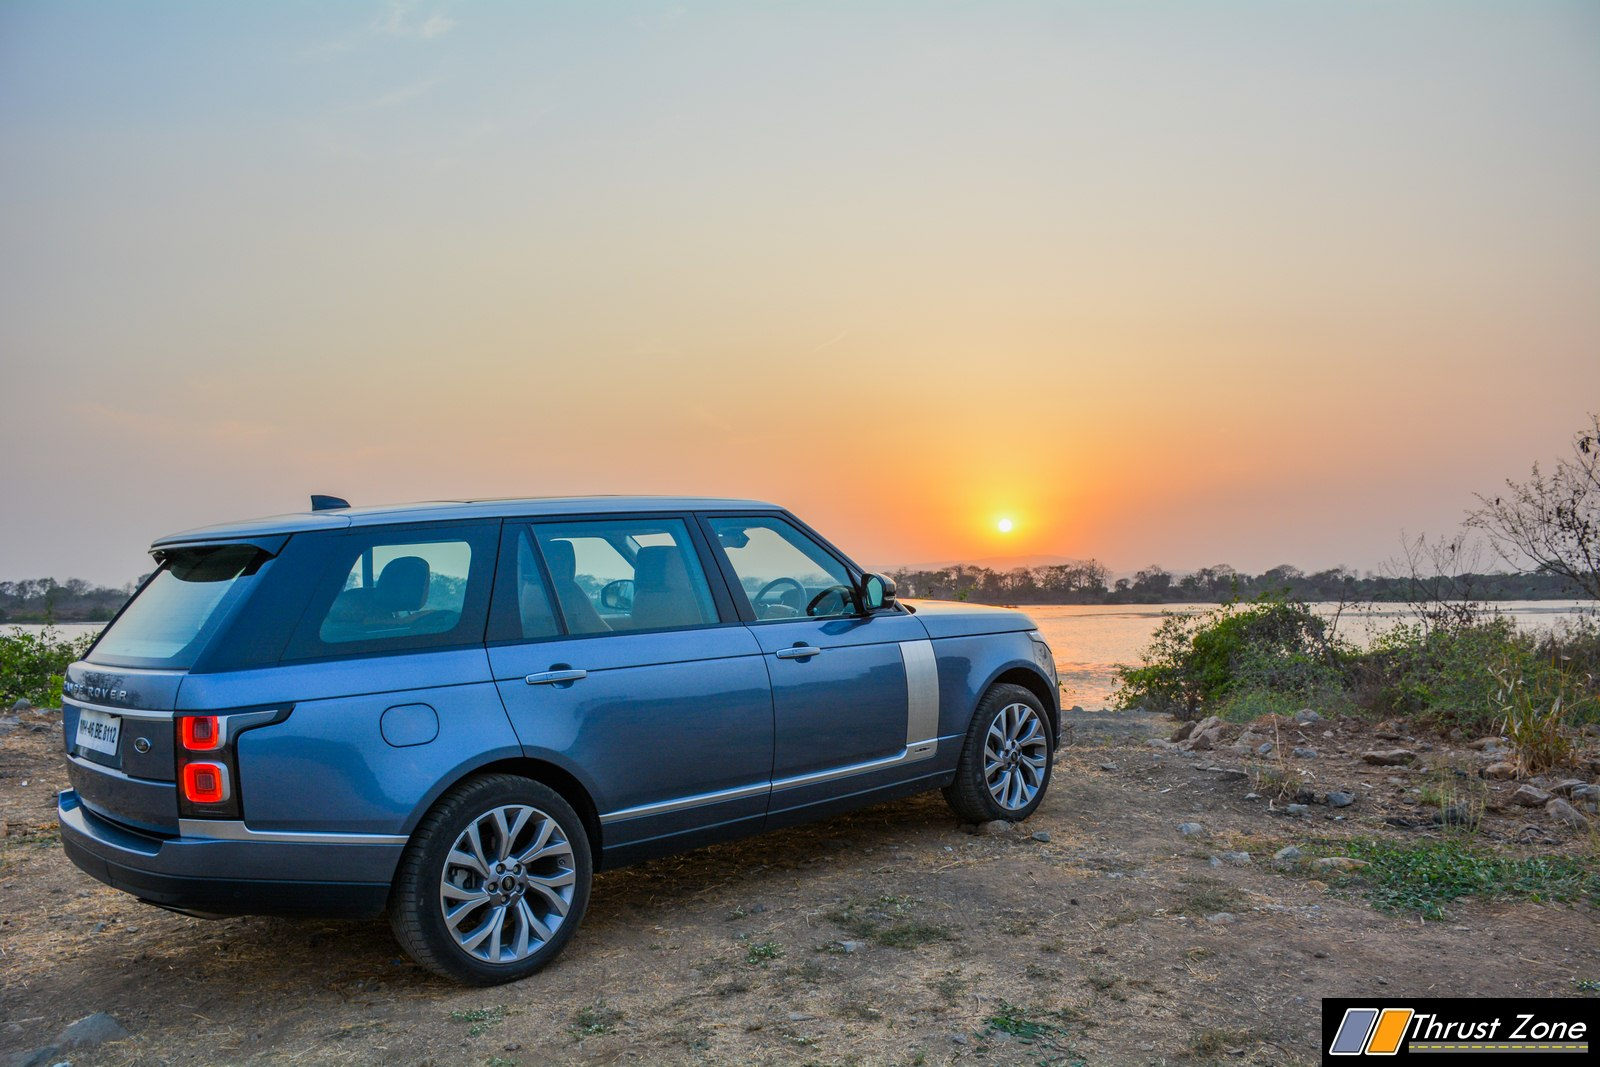 https://www.thrustzone.com/wp-content/uploads/2019/05/2019-Range-Rover-India-Diesel-V6-Review-40.jpg